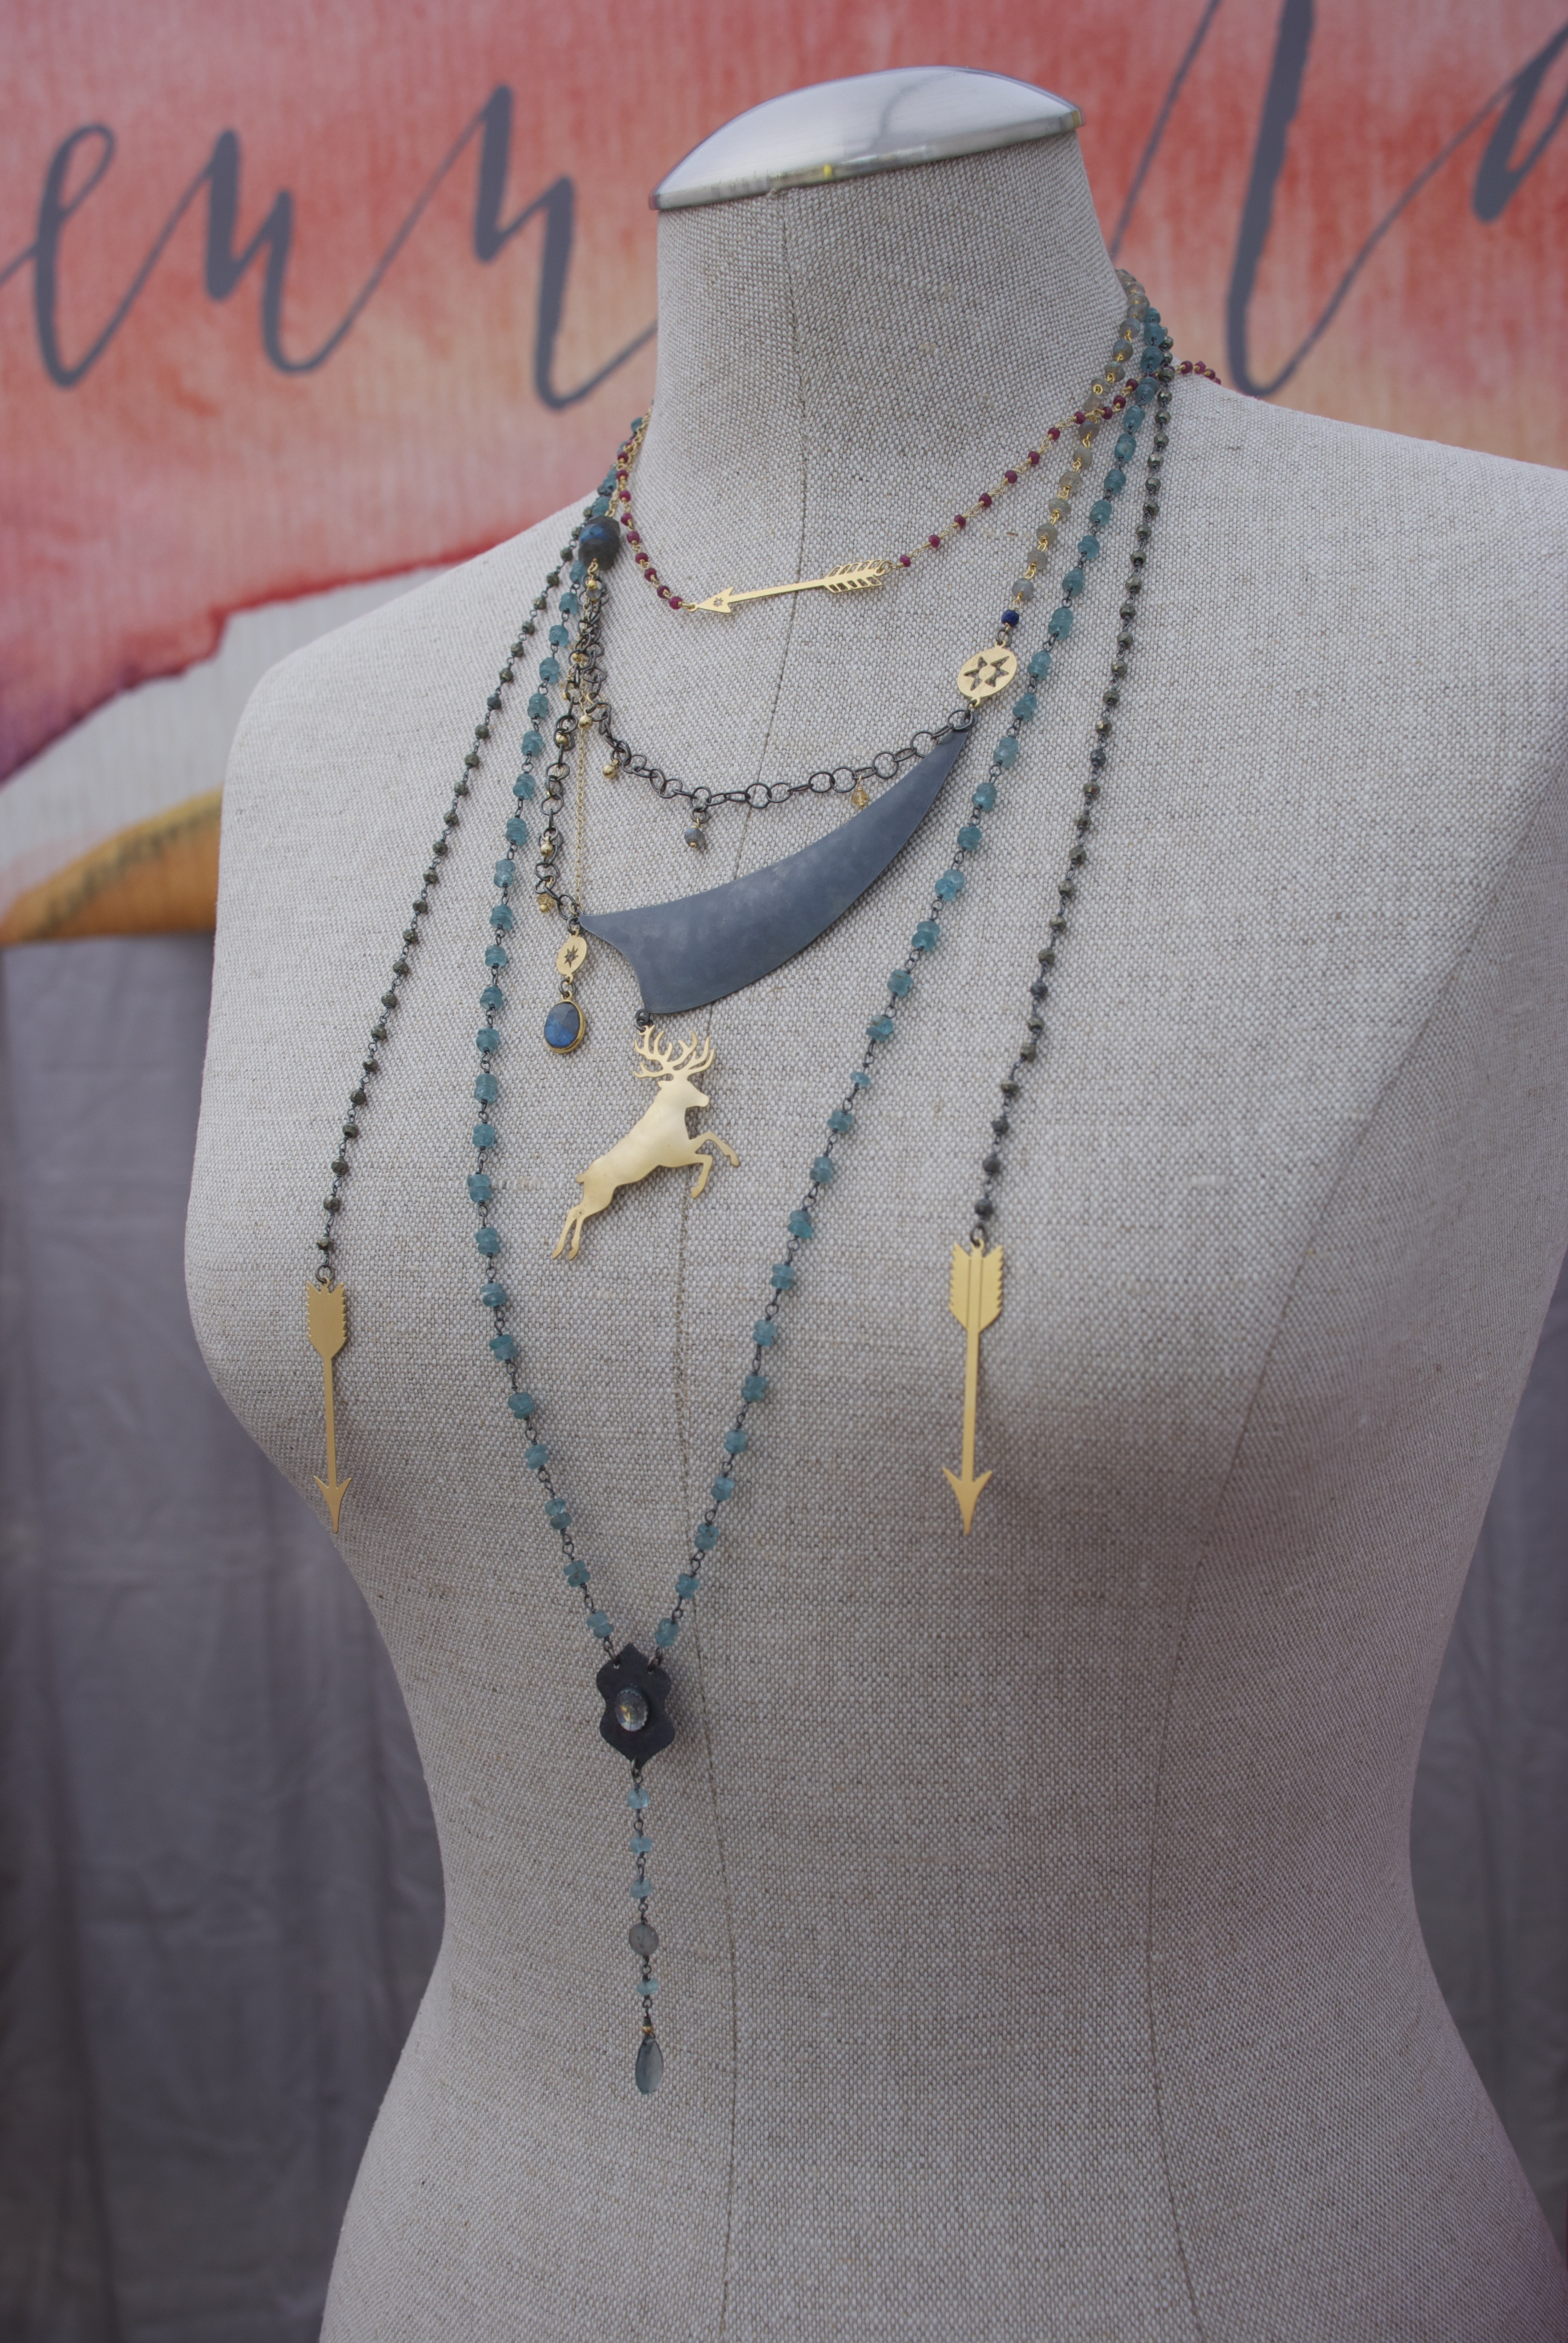 Handcrafted Necklaces by Jenne Rayburn